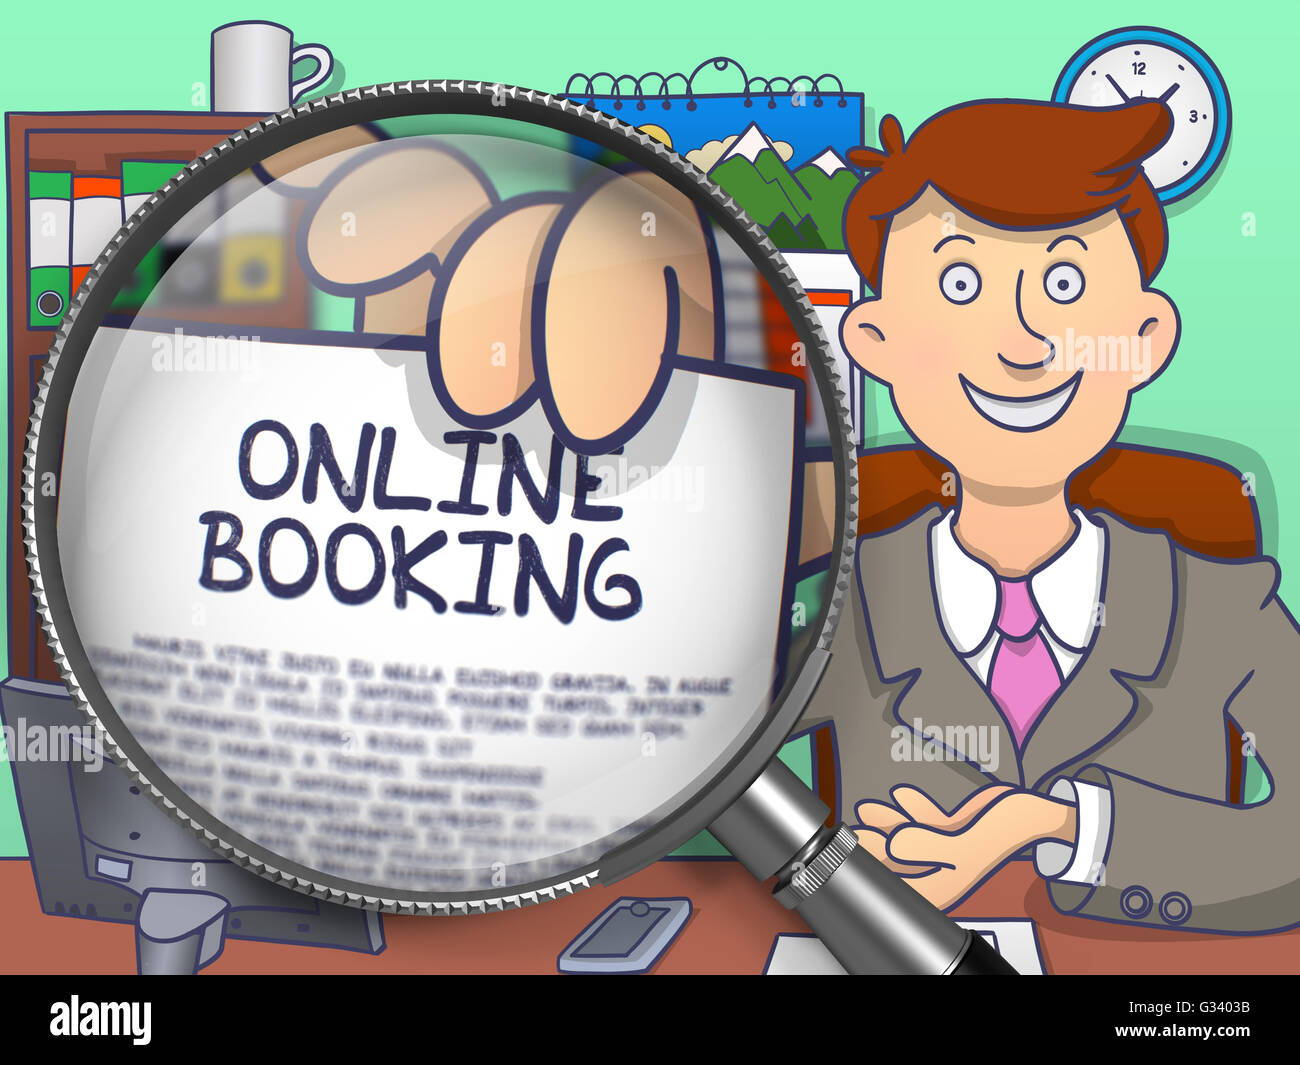 Online Booking through Magnifying Glass. Doodle Style. - Stock Image